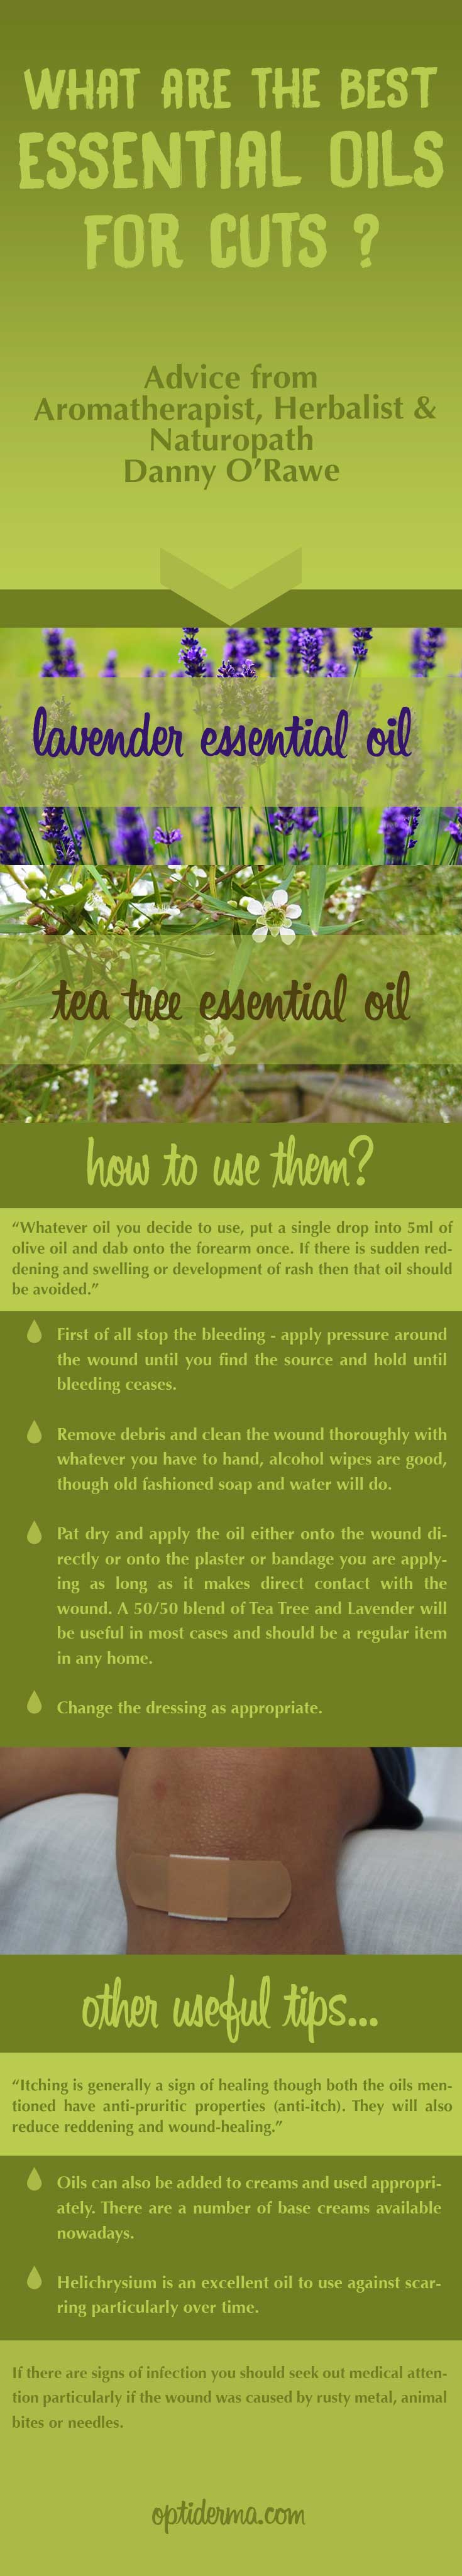 essential oils to heal cuts